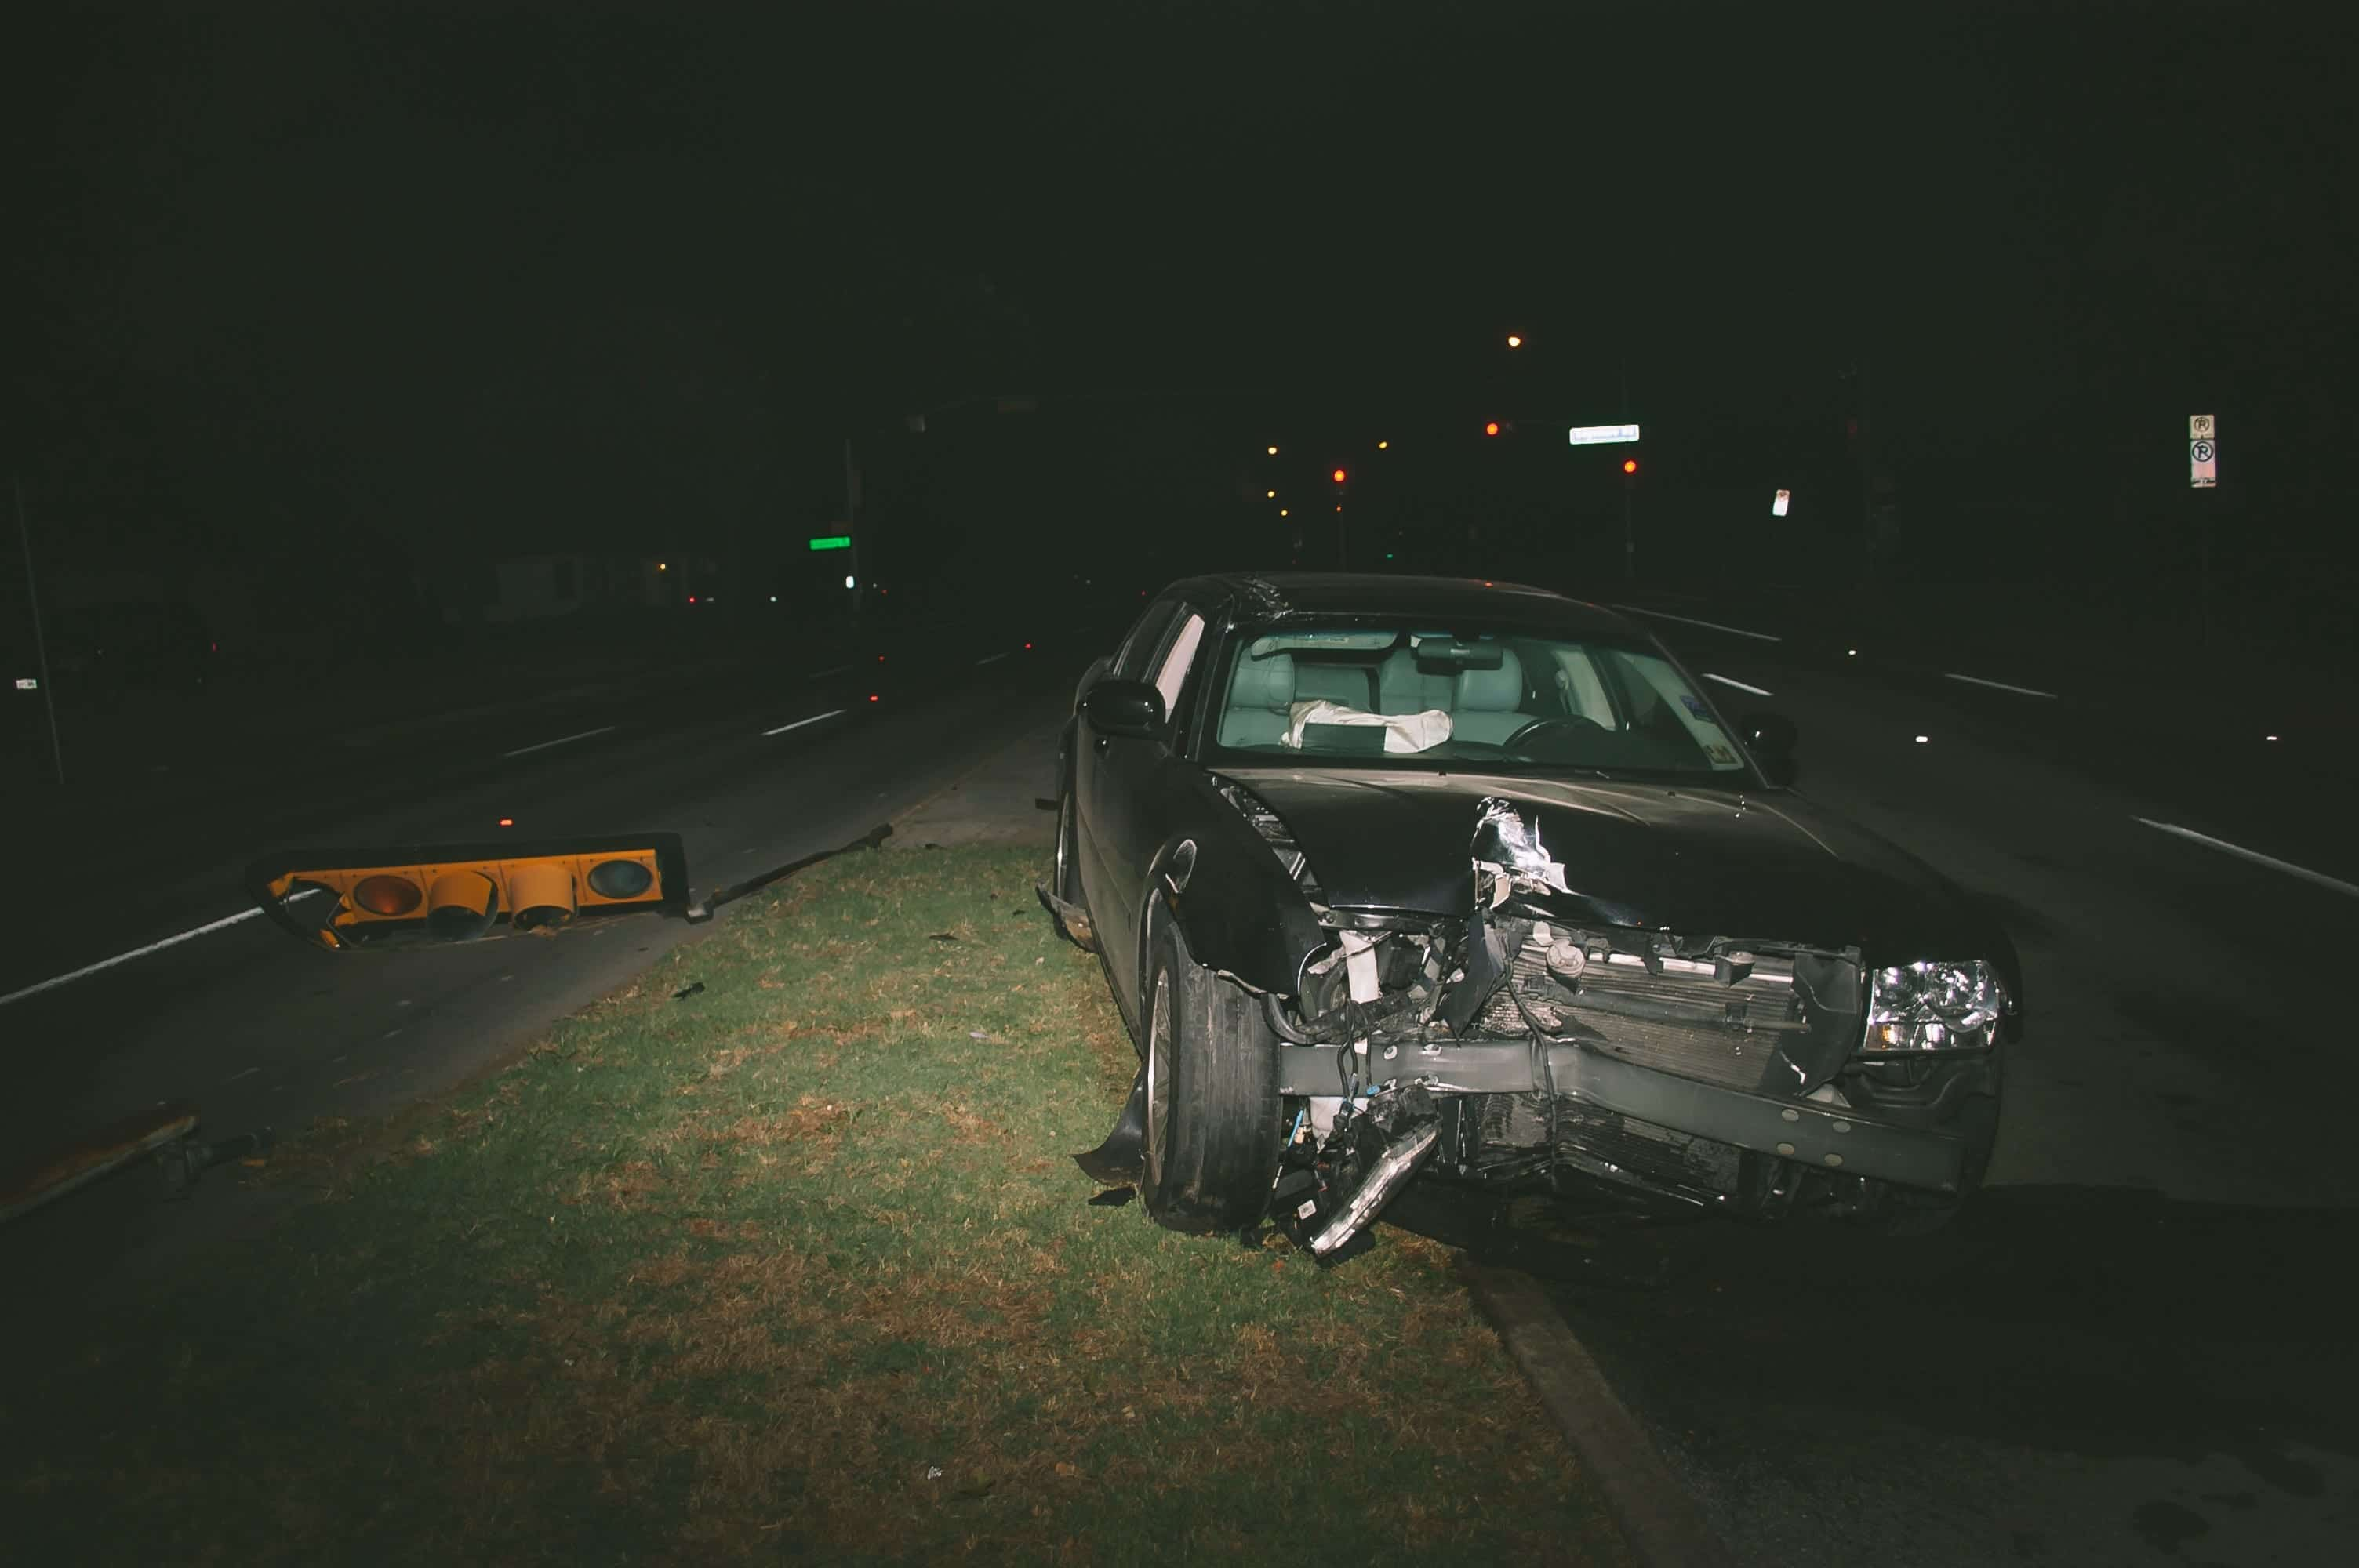 A car with serious front-end damage in the street at night next to a fallen traffic light; image by Matthew T. Rader, via Unsplash.com.